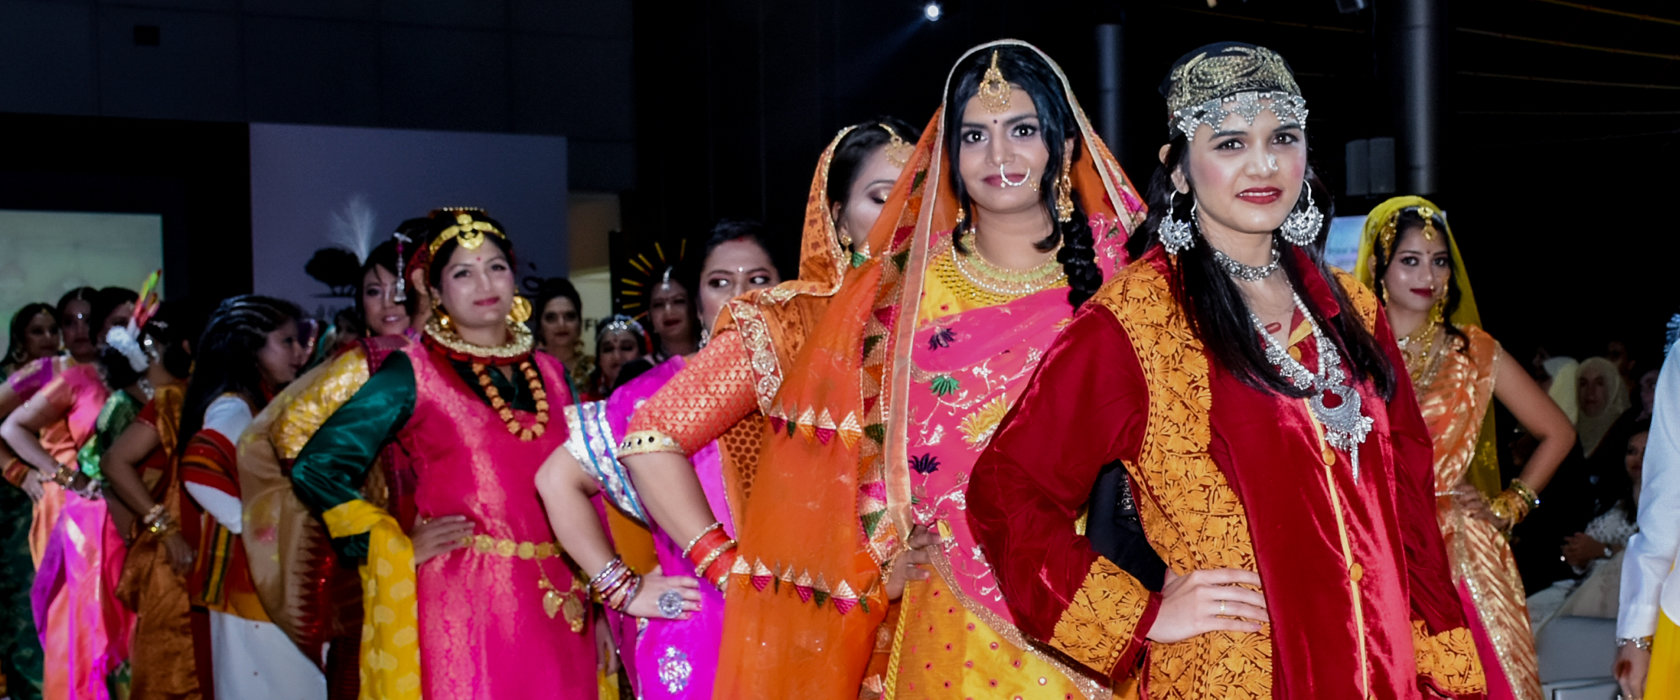 QF's role as a cultural connector praised at showcase of Indian tradition and style